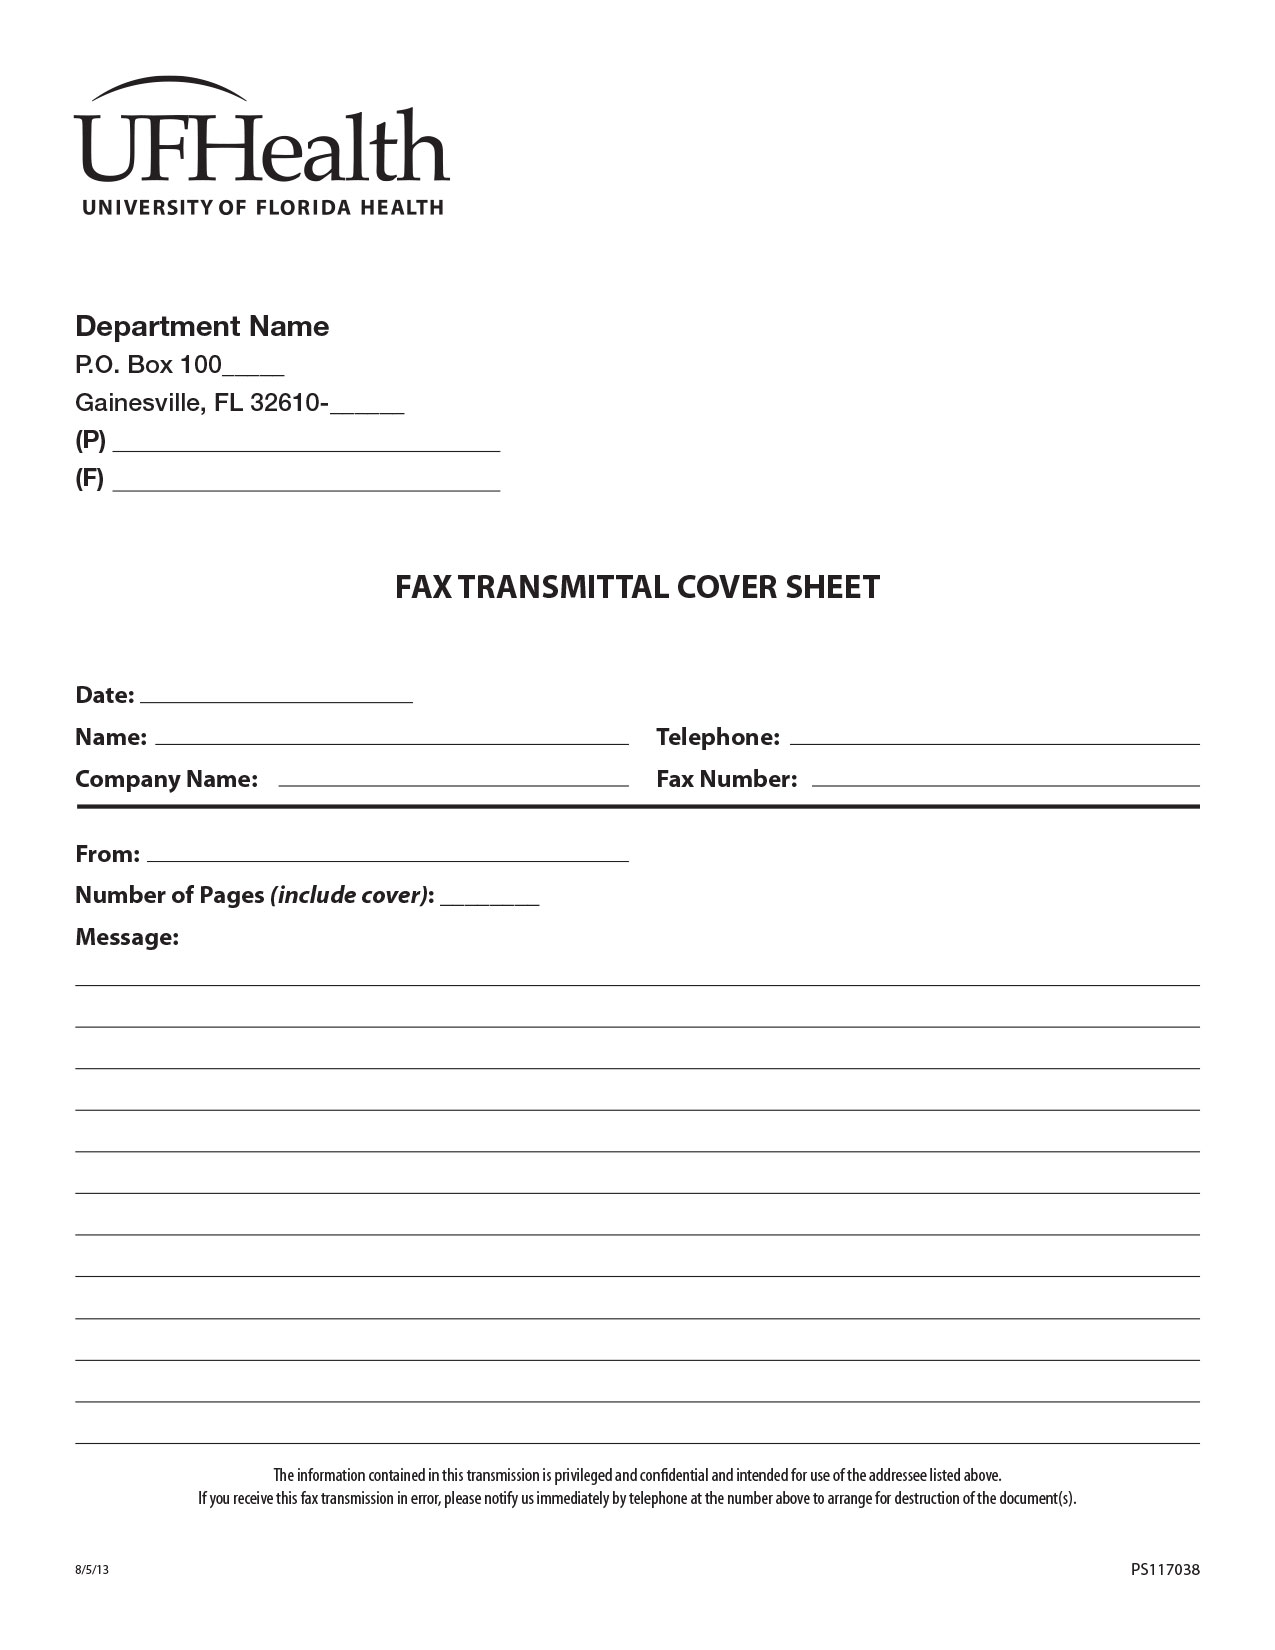 Business fax cover sheet itemroshop business fax cover sheet wajeb Images